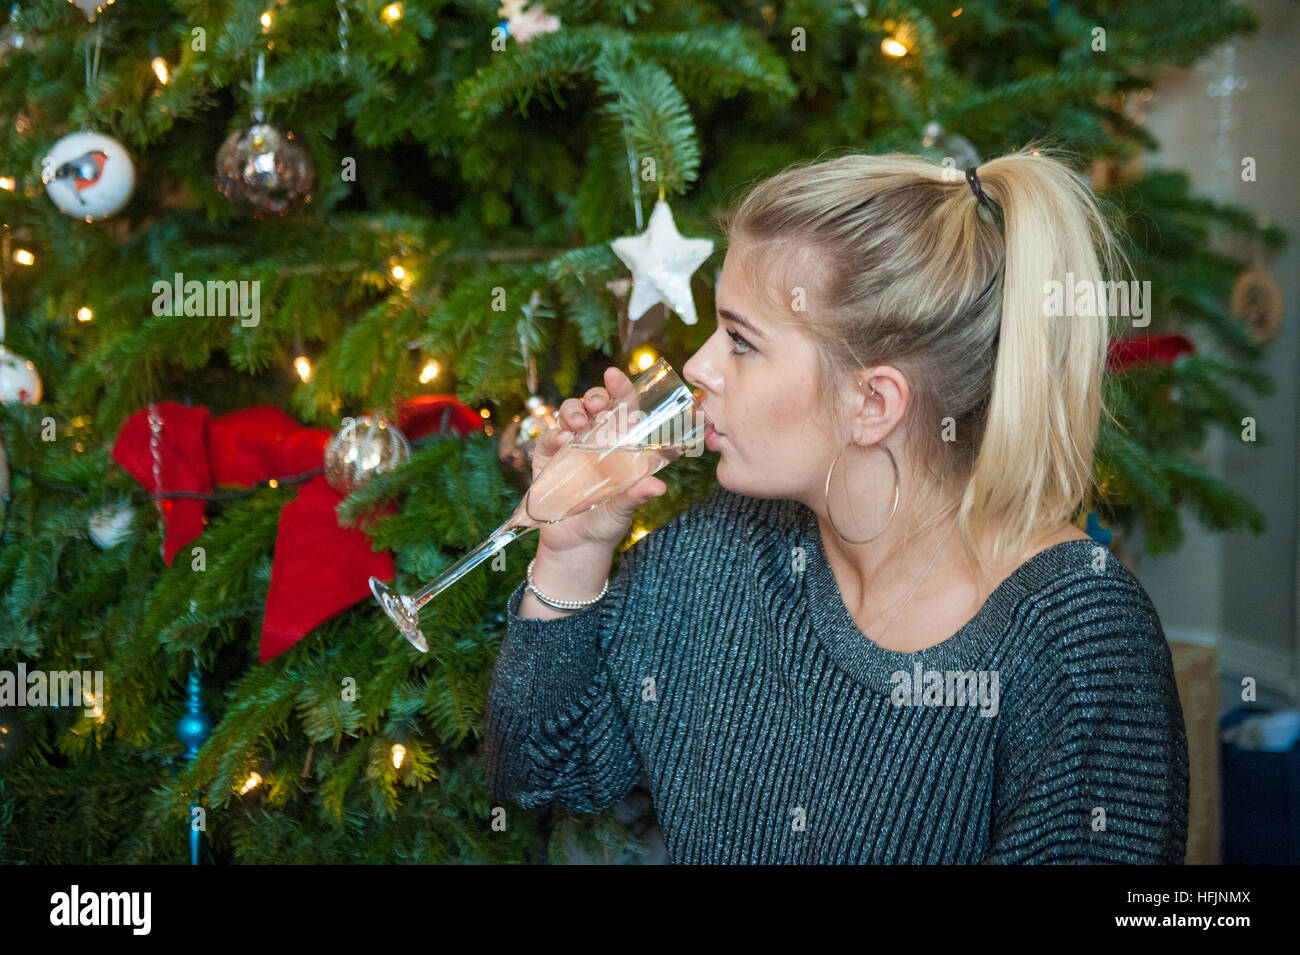 A pretty blond girl by a Christmas tree - Stock Image